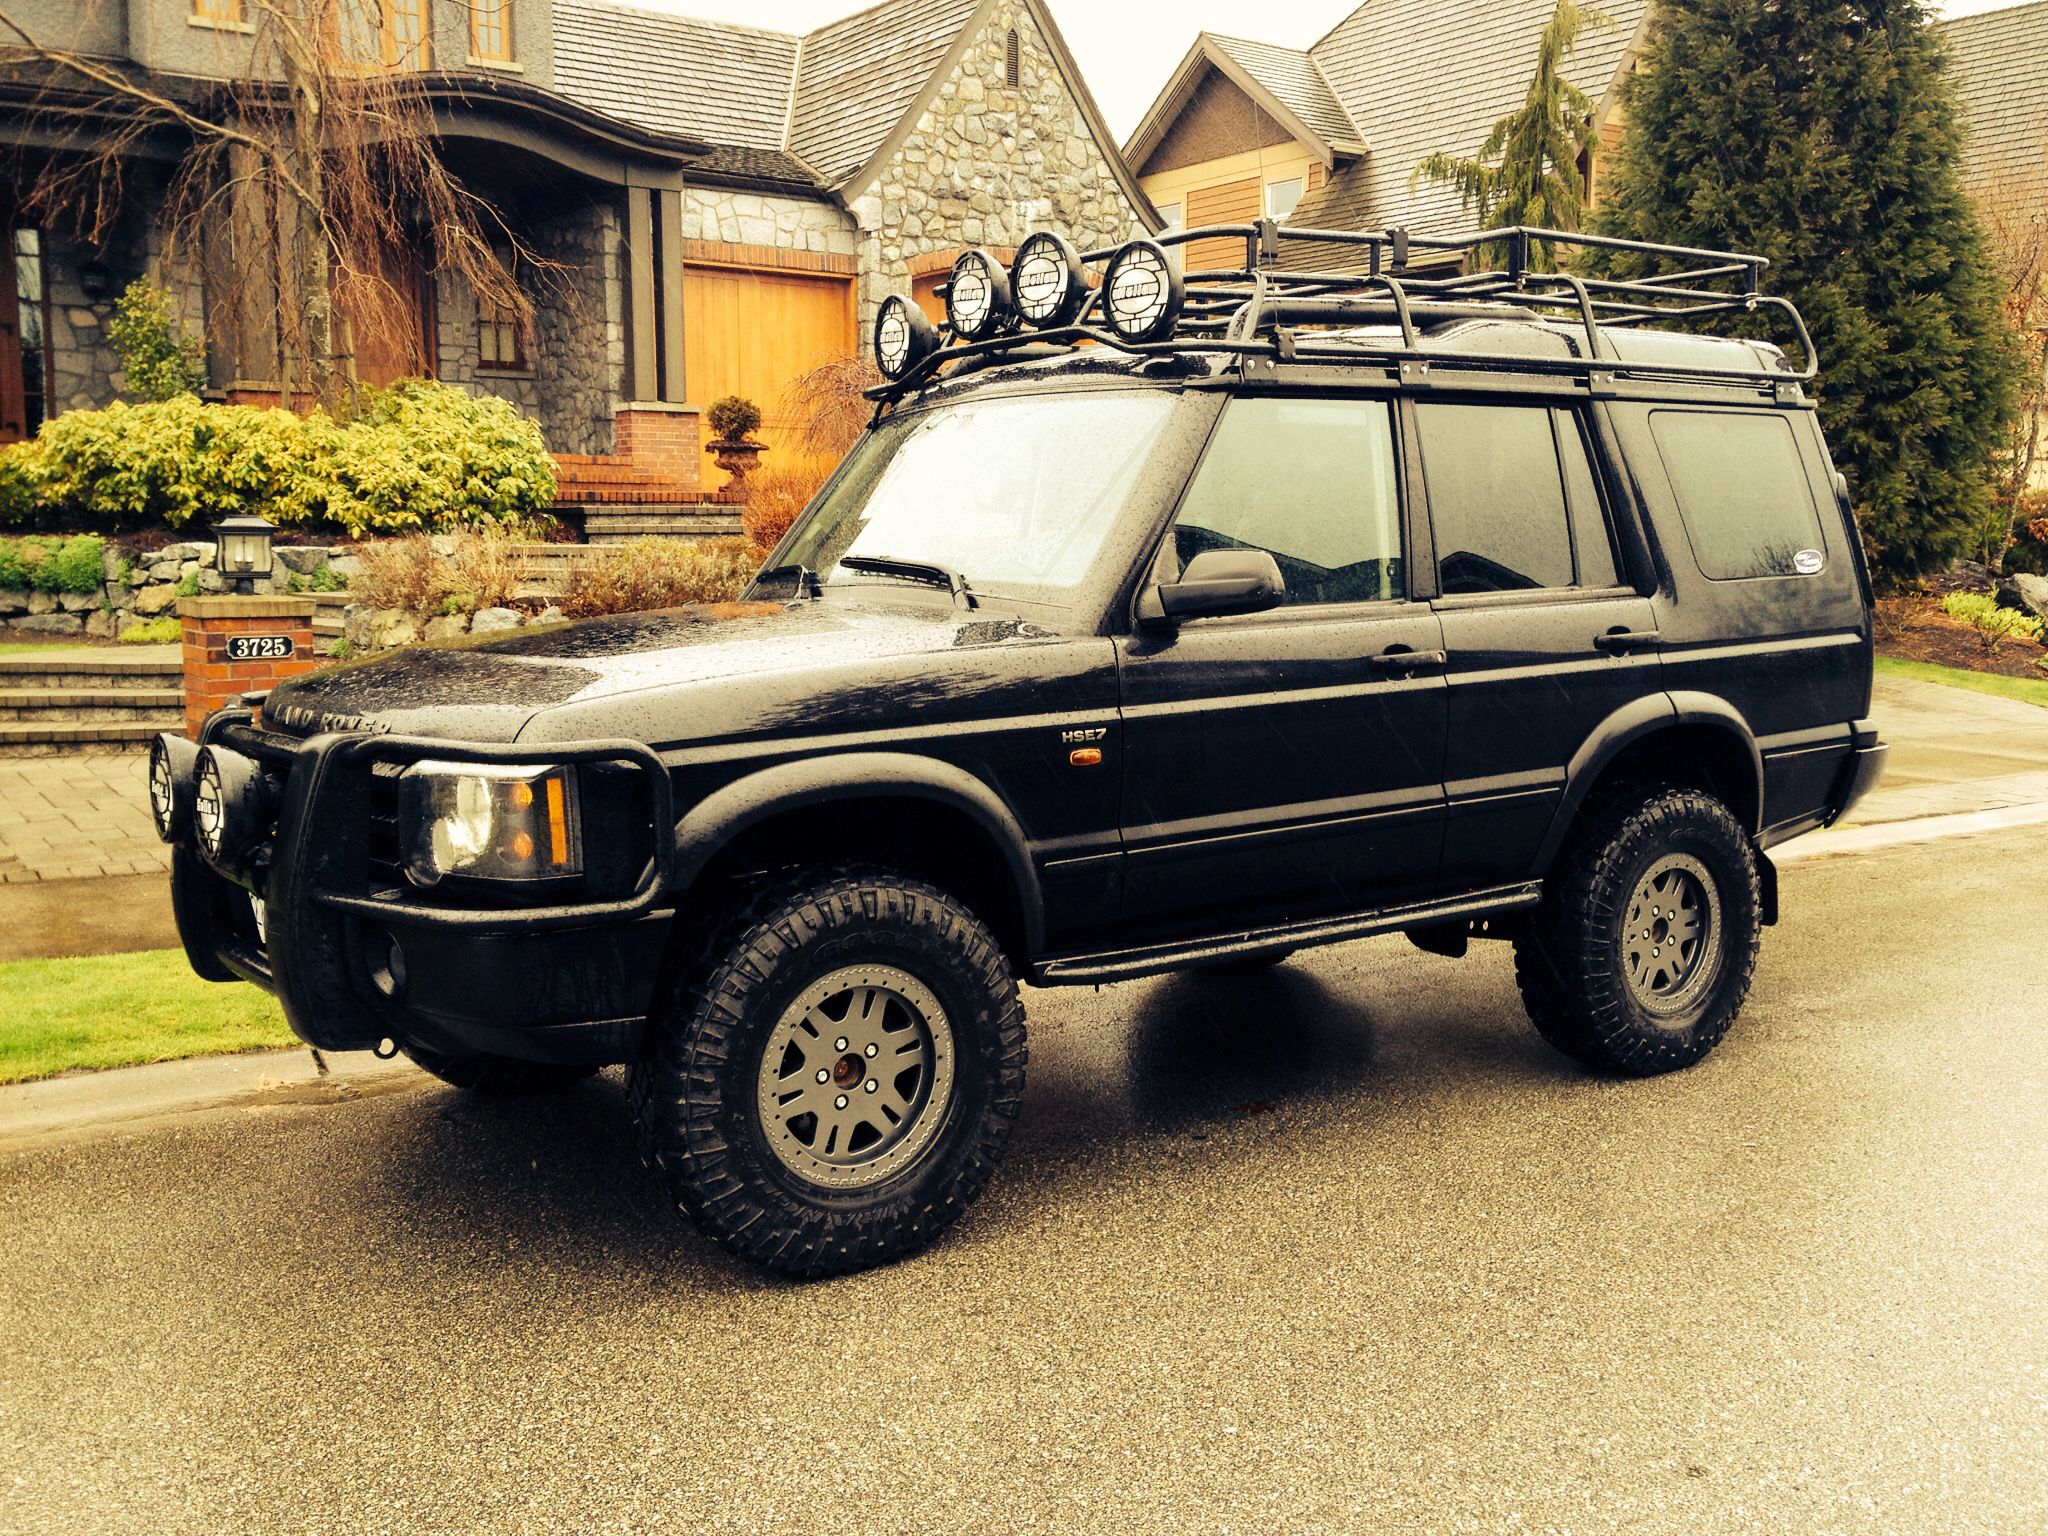 Terrafirma 2 Lift Kit With Sls Air Bags Still In Place Land Rover Series Land Rover Discovery 1 Land Rover